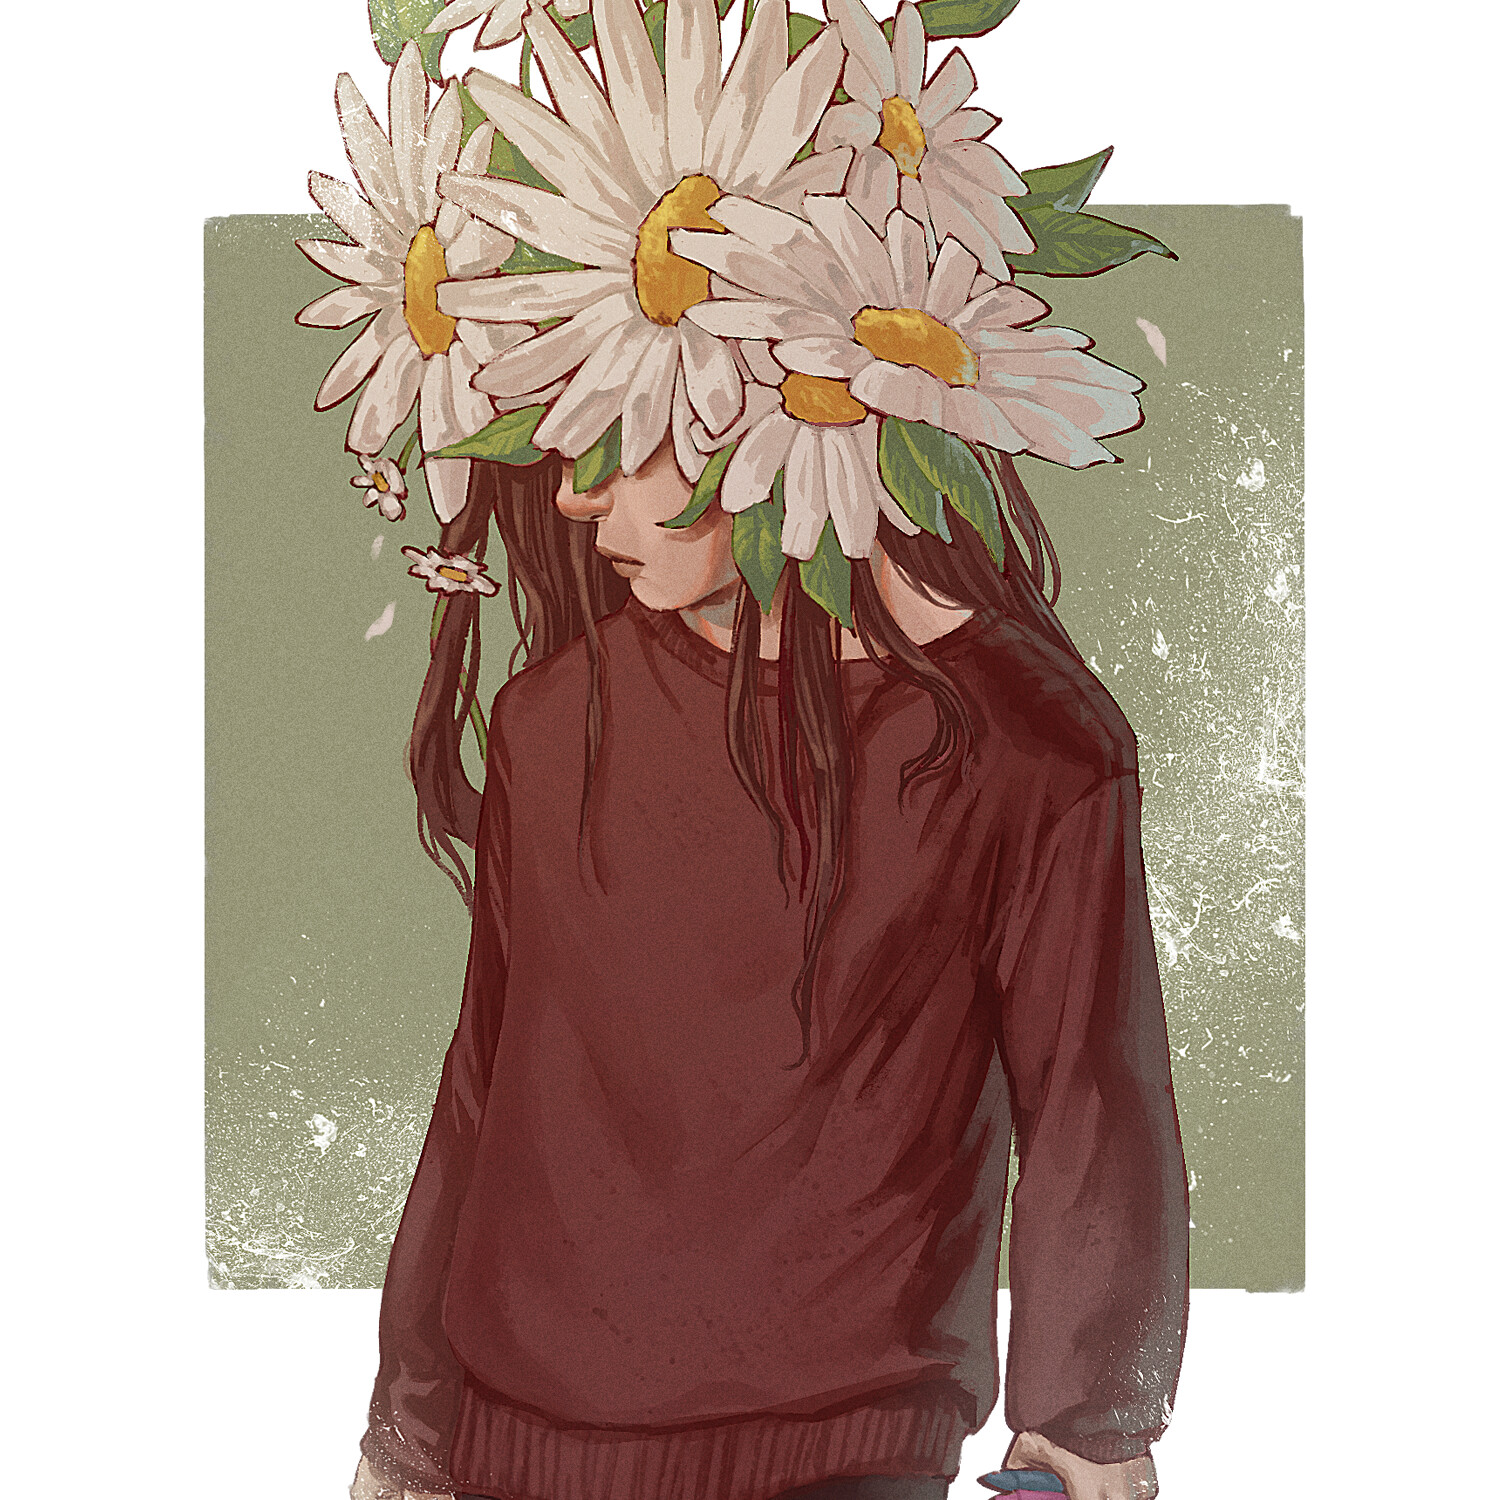 Care and the daisies